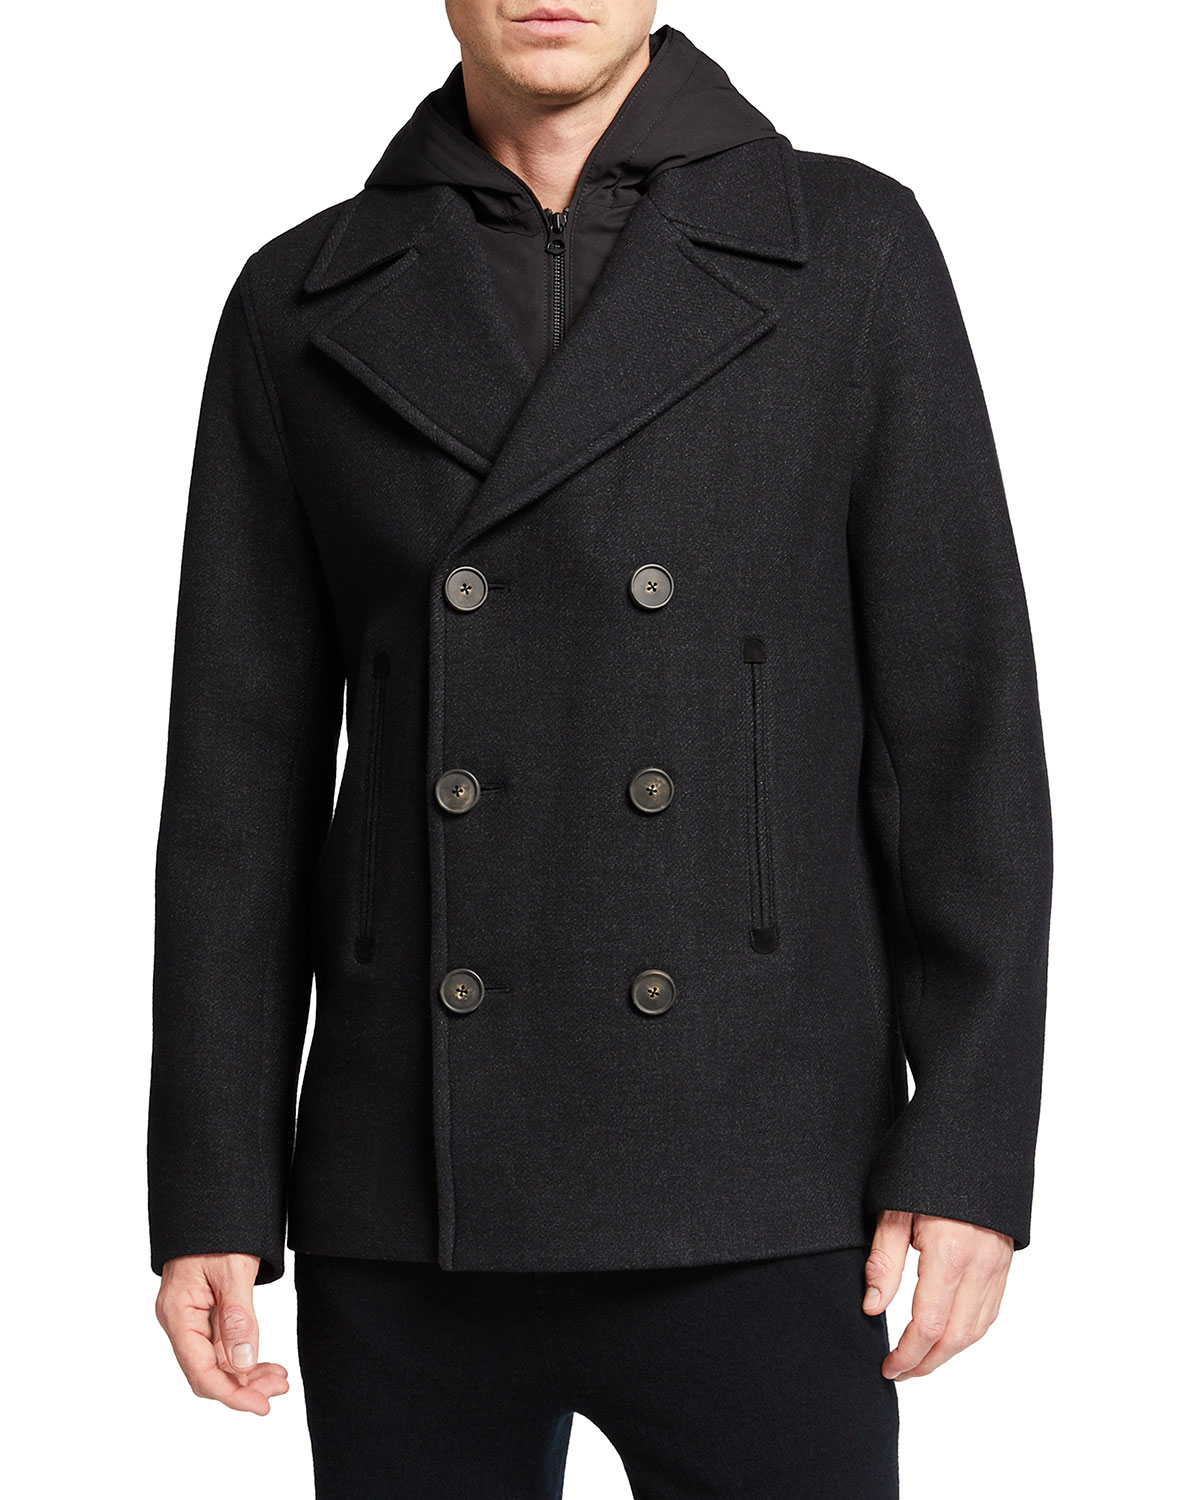 Vince MEN'S DOUBLE-BREASTED WOOL PEACOAT W/ REMOVABLE HOOD